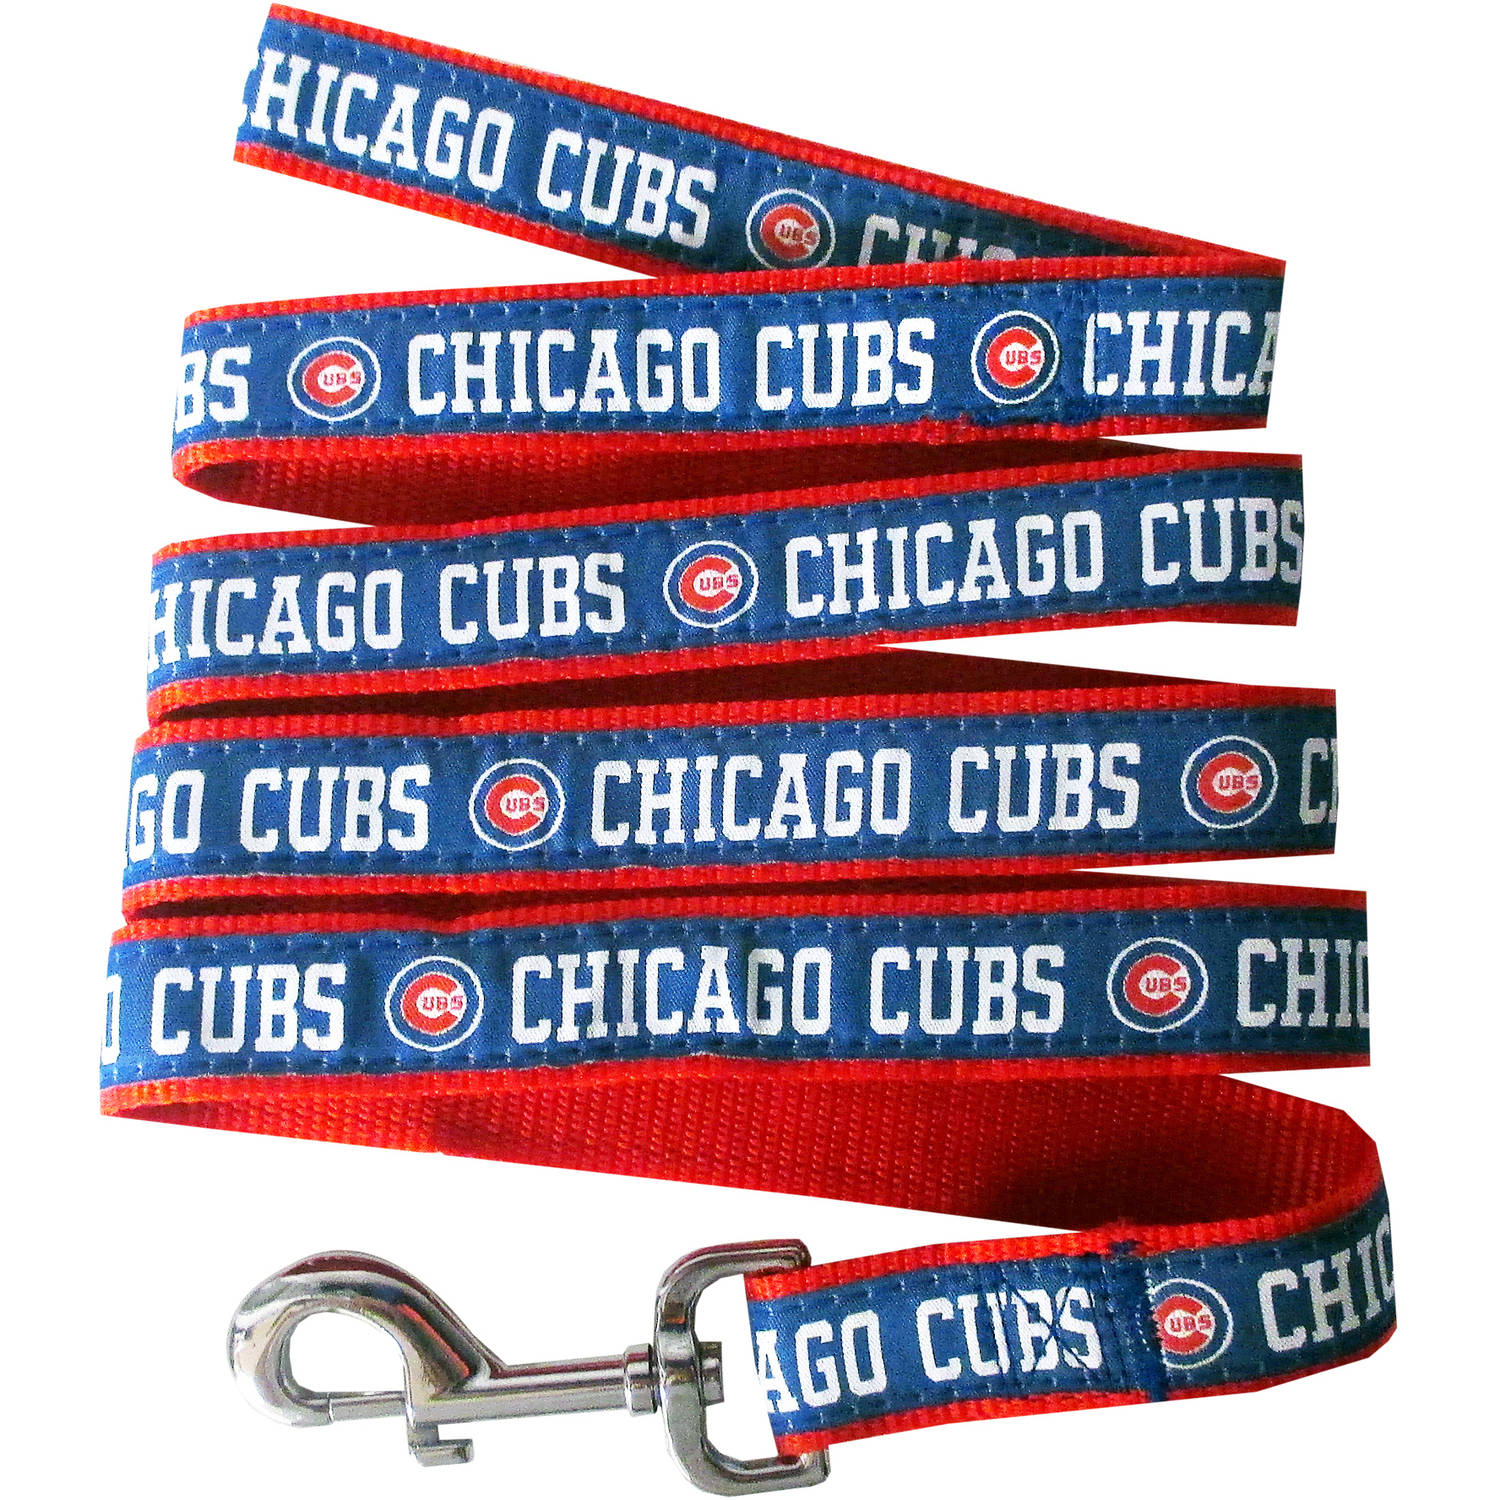 Pets First Chicago Cubs Pet Leash, Small